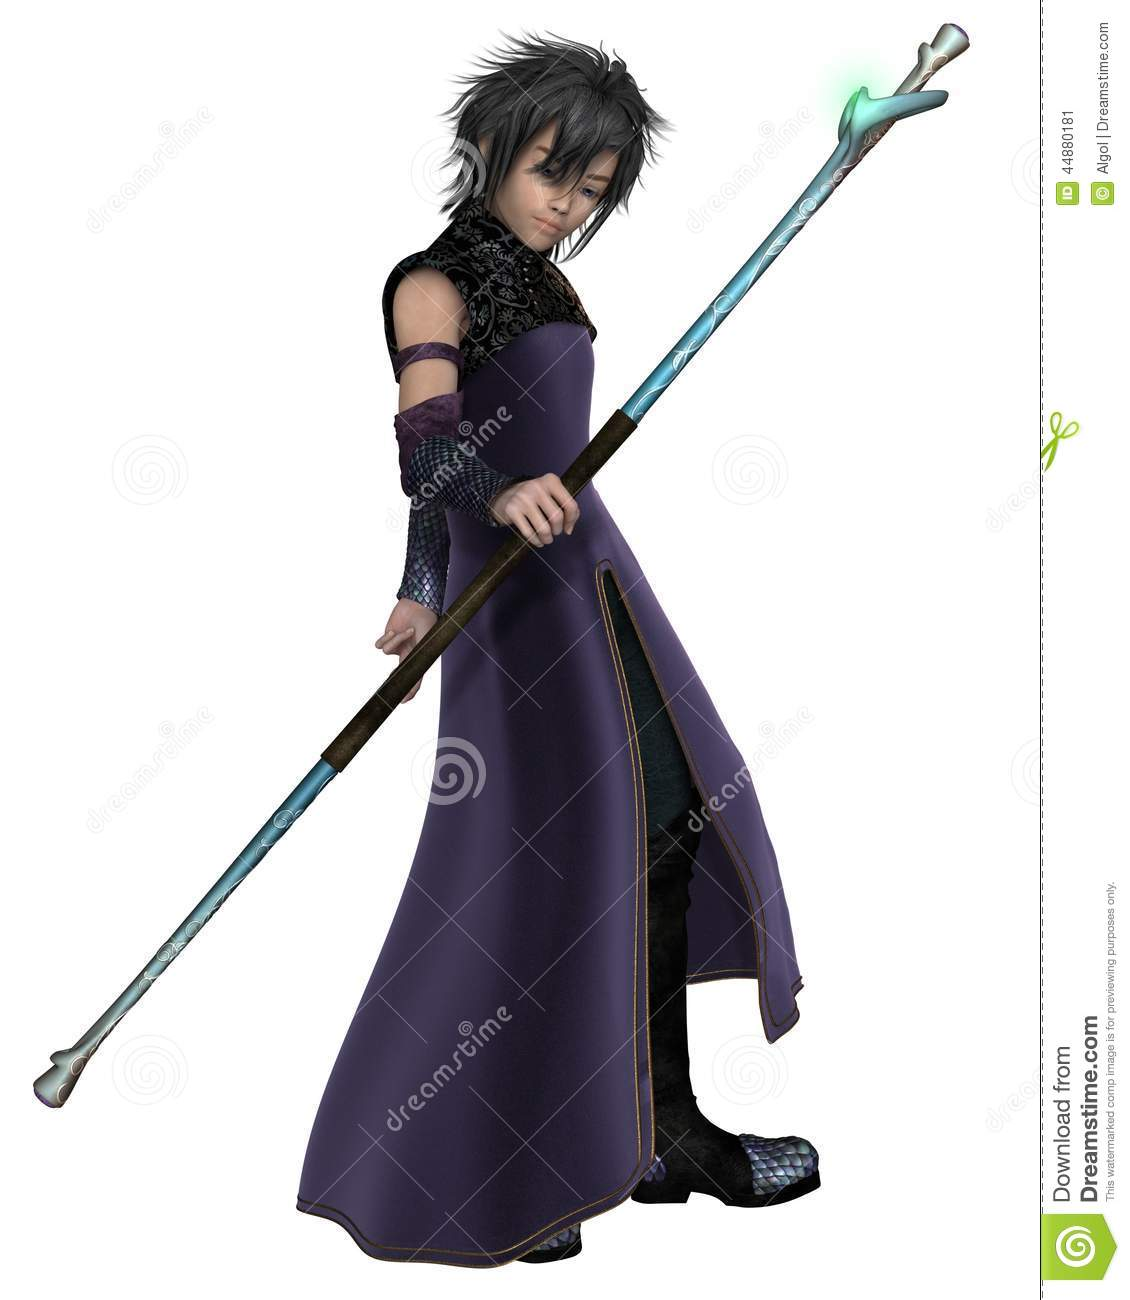 ... robes and carrying a magic staff, 3d digitally rendered illustration